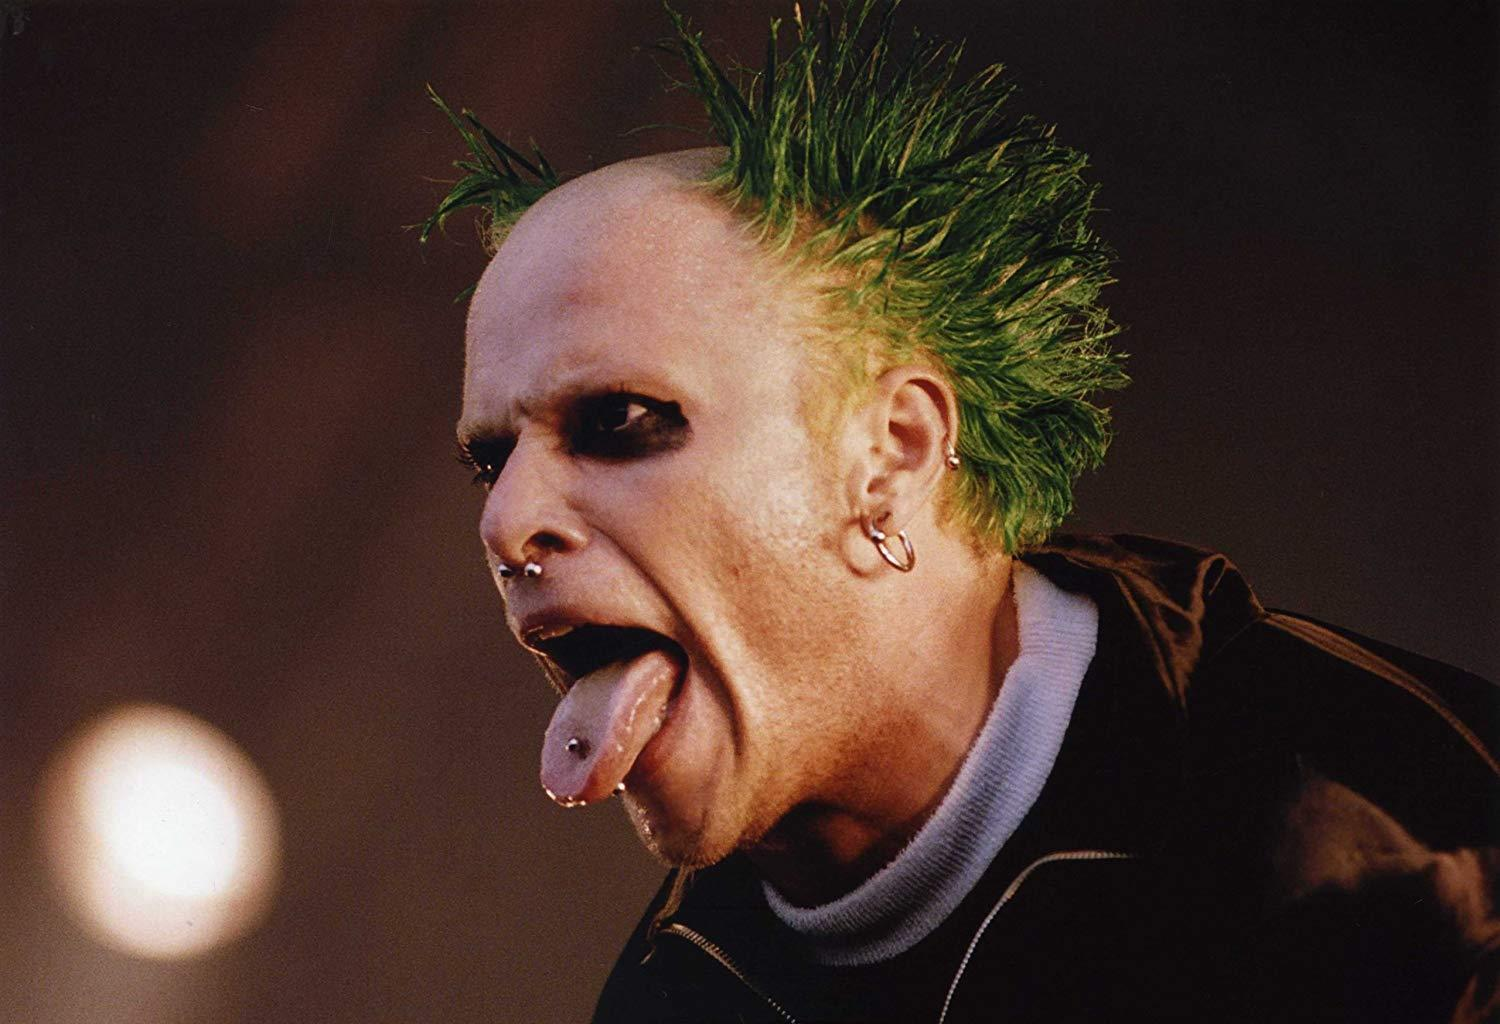 Prodigy Vocalist Keith Flint, Reportedly Found Dead In His Home - He Was 49